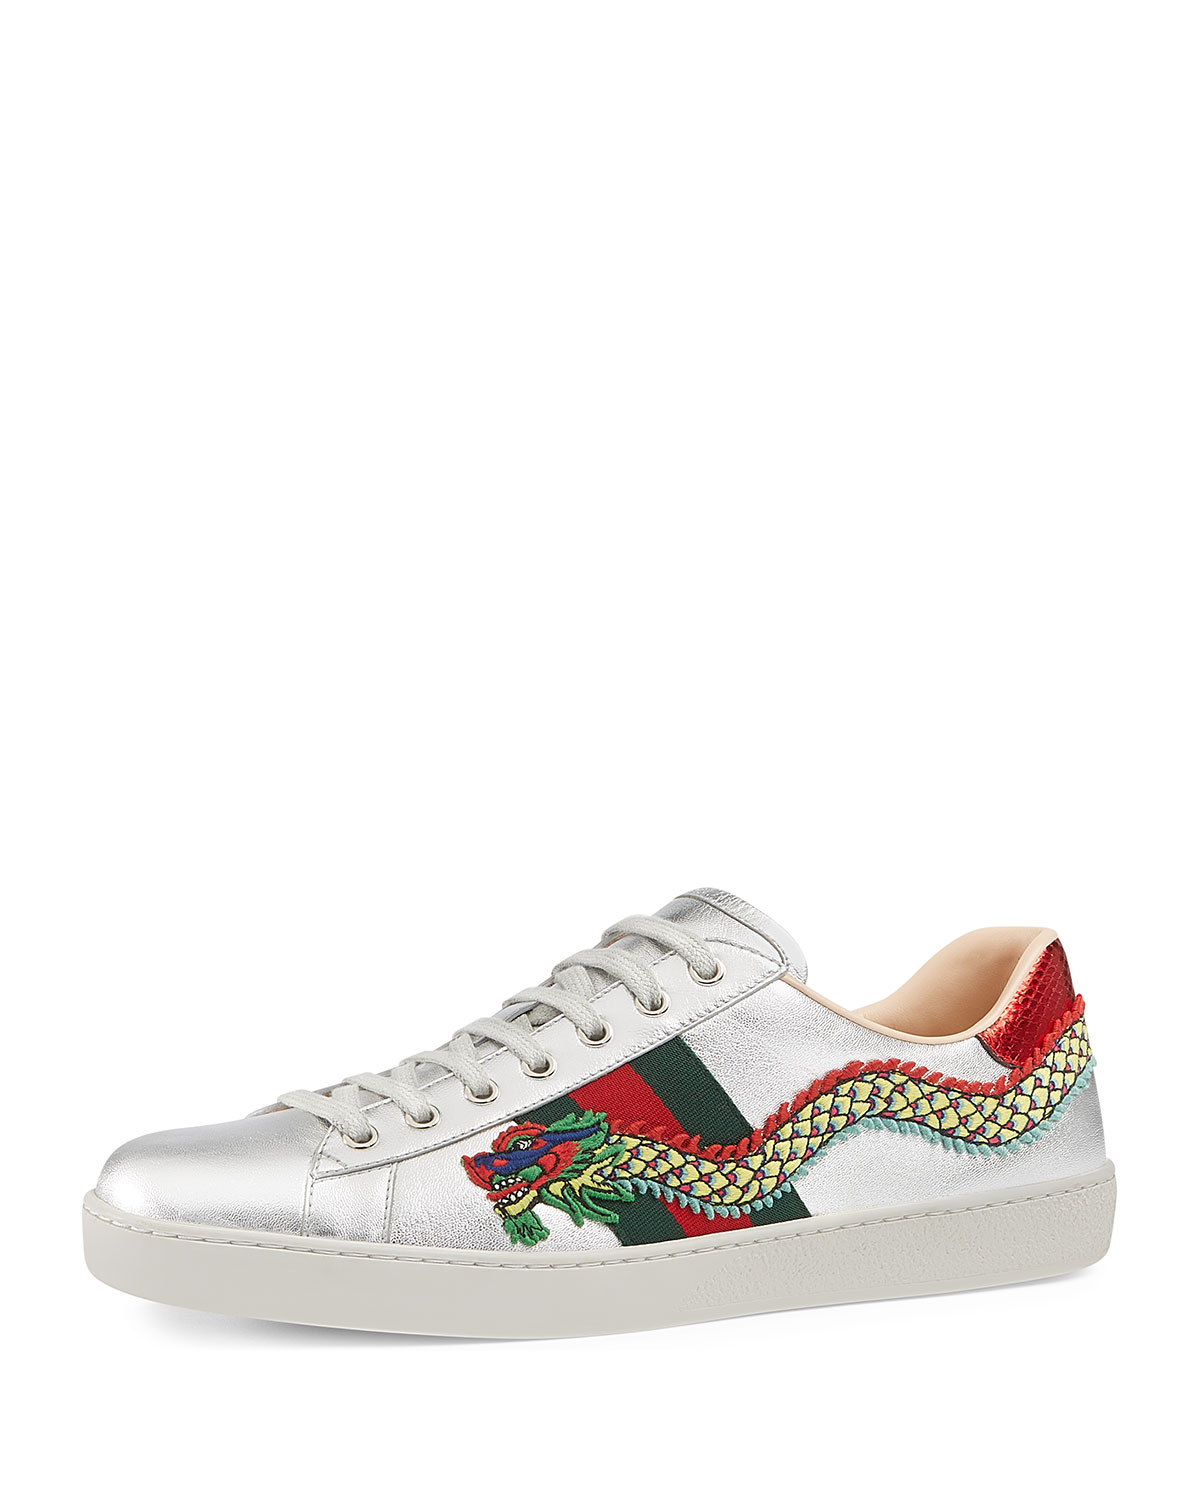 cedf4f8d41bf Gucci Men s New Ace Embroidered Leather Low-Top Sneakers